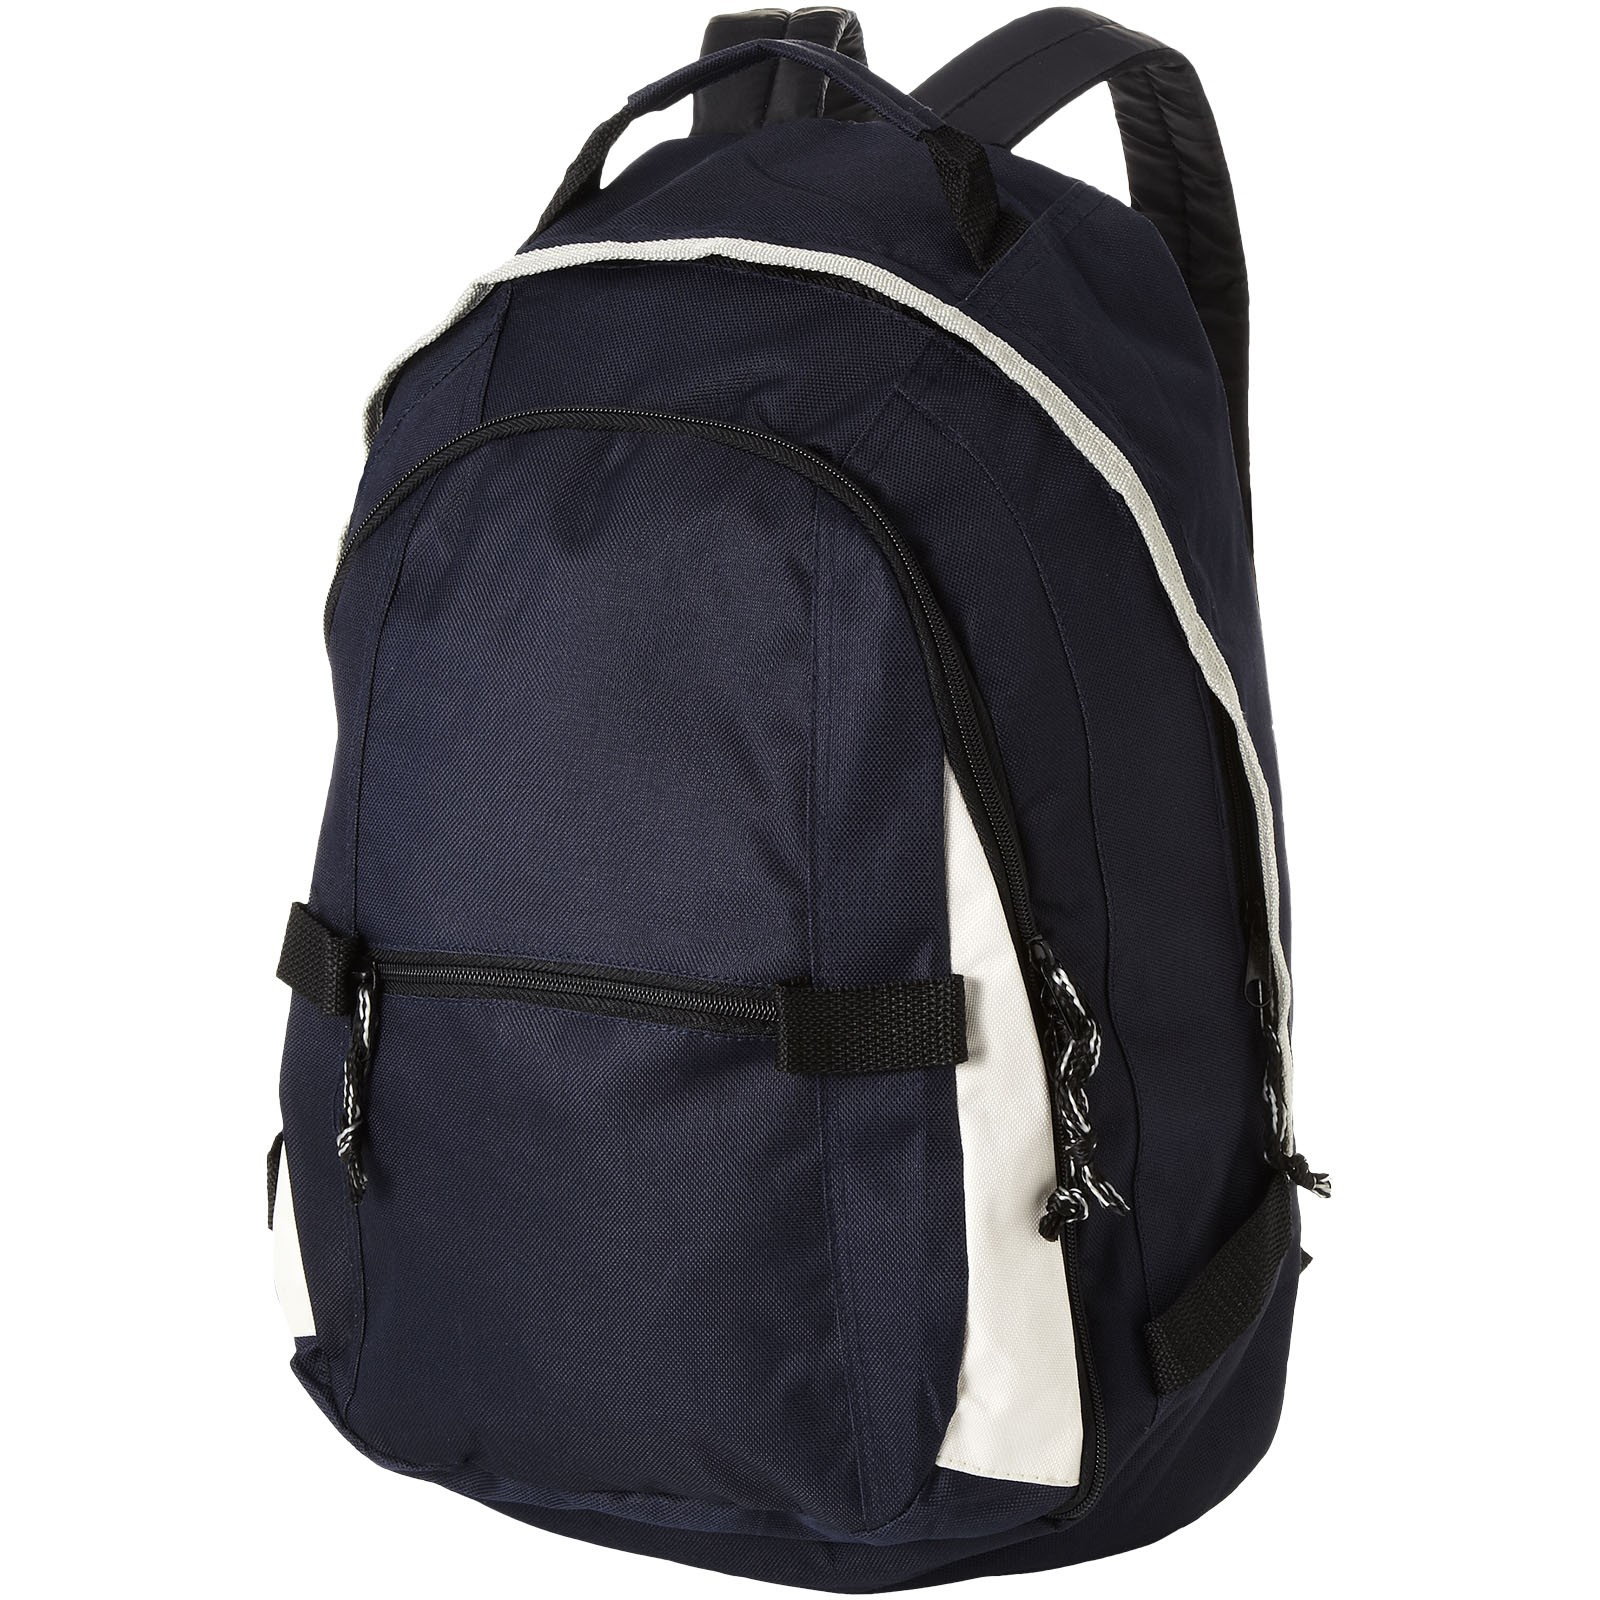 Colorado covered zipper backpack - Navy / White / Solid black